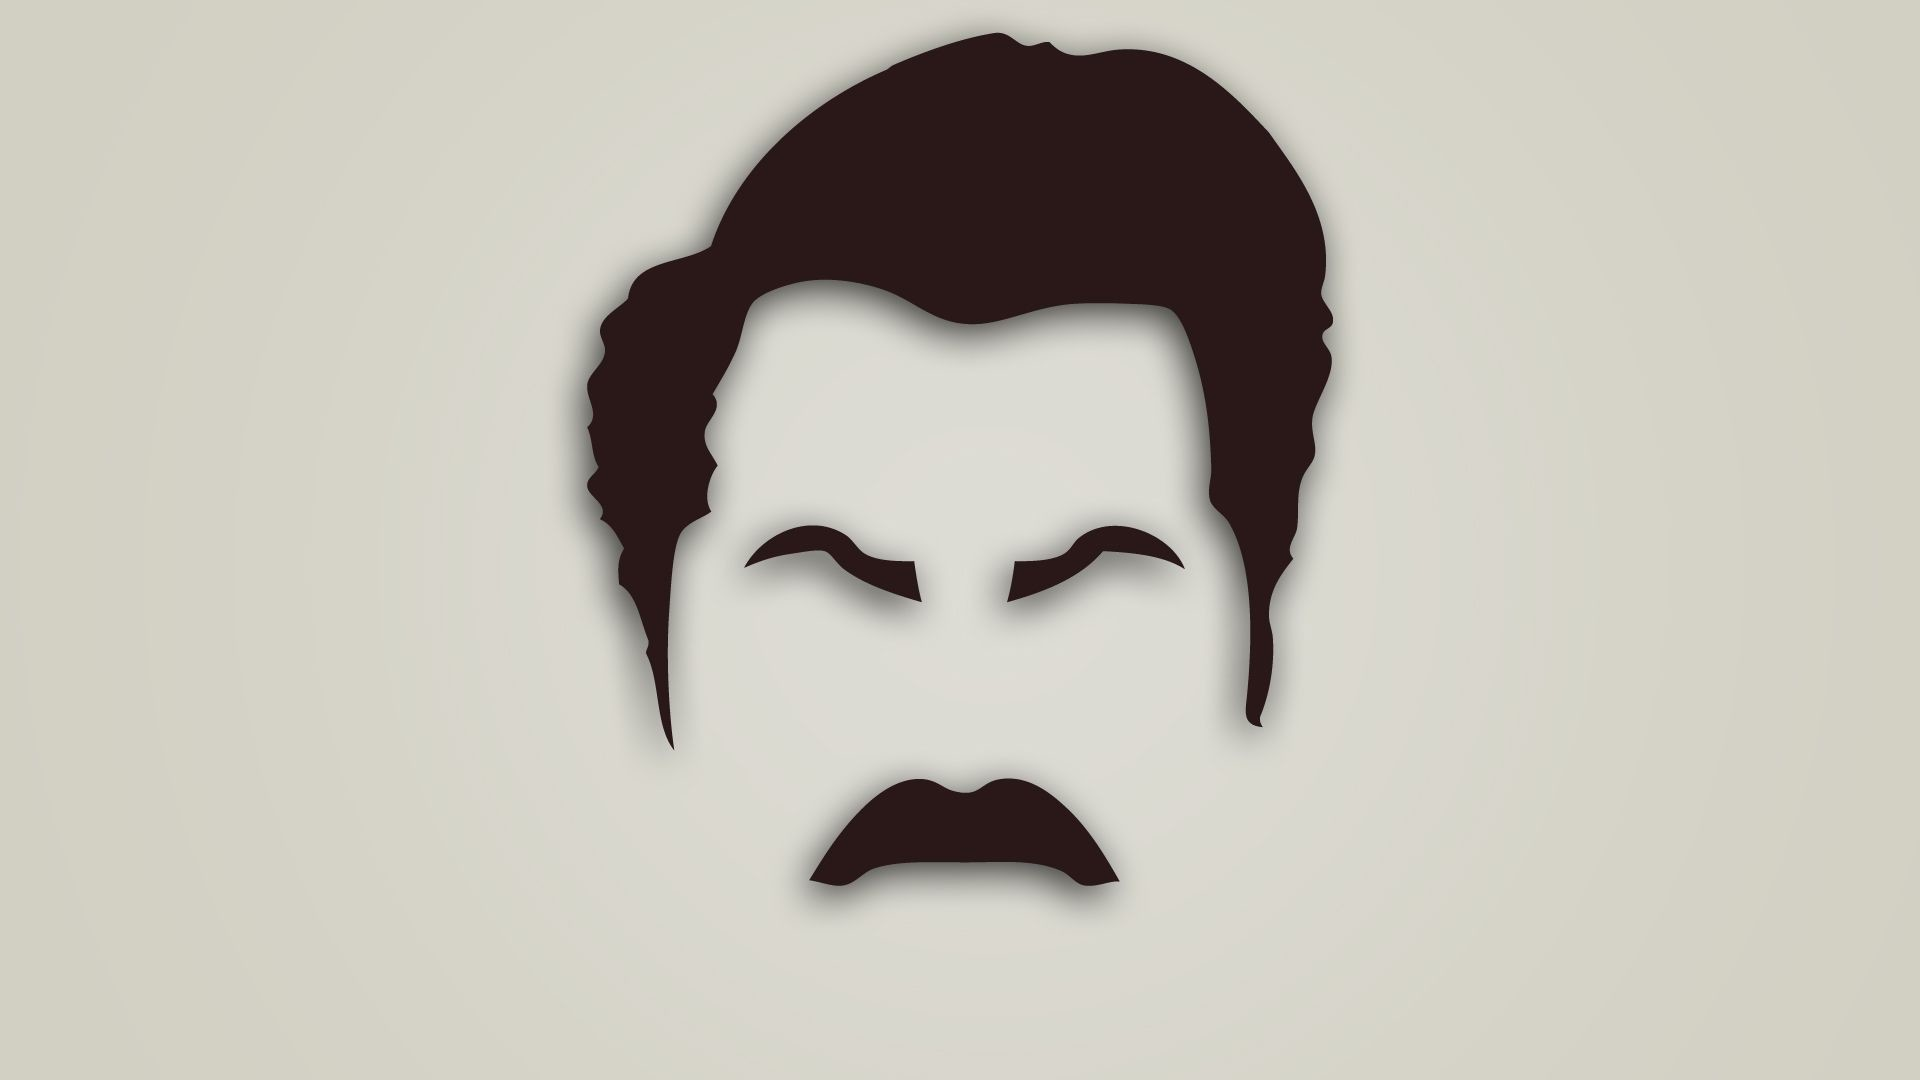 2560x1600 Cute Wallpaper For Iphone Source A Mustache Wallpapers On Tumblr